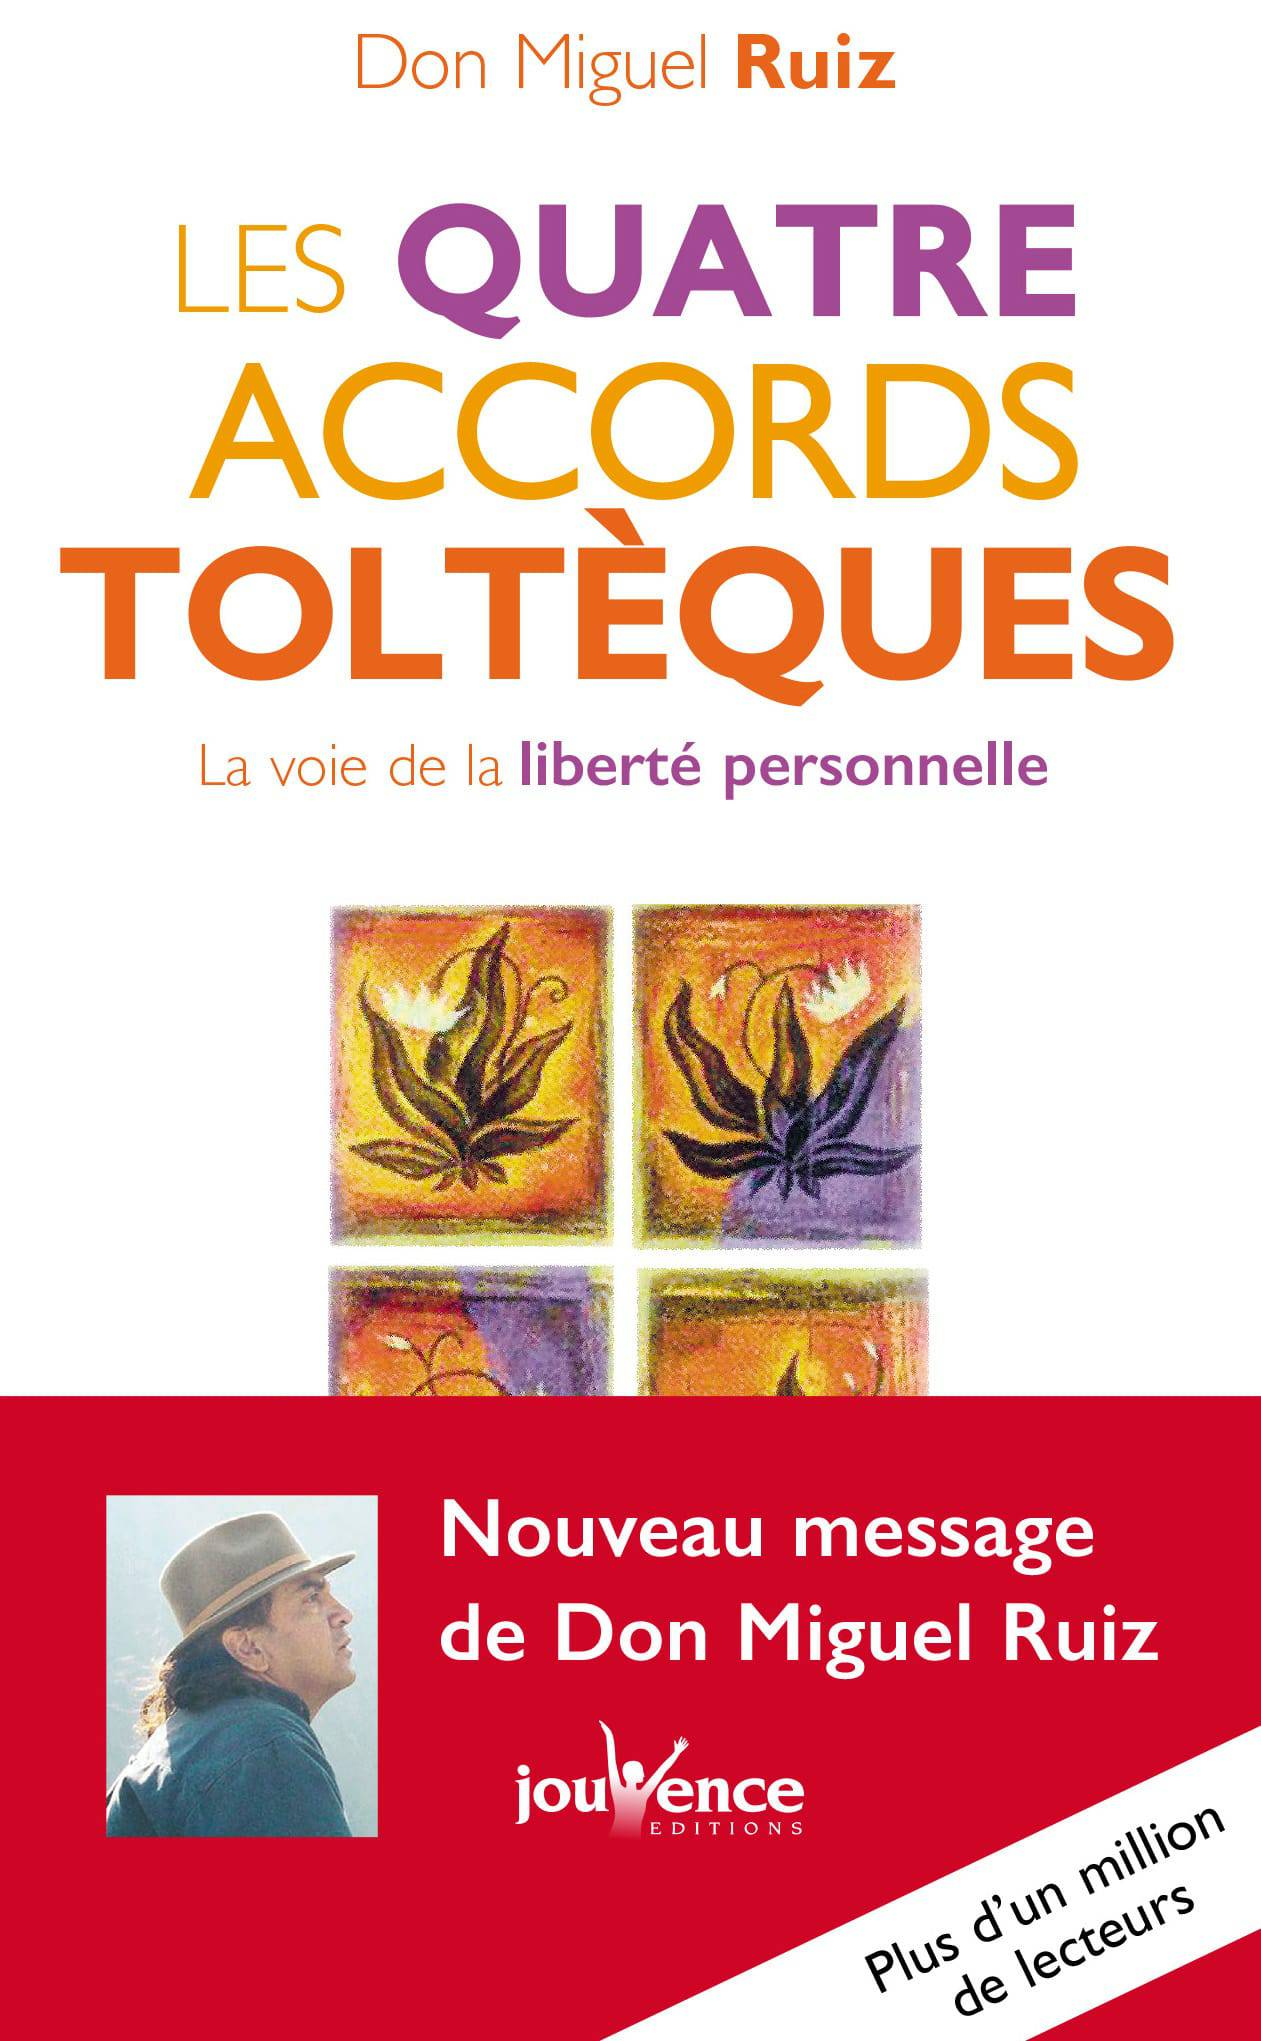 Les Quatres Accords toltèques, don Miguel Ruiz